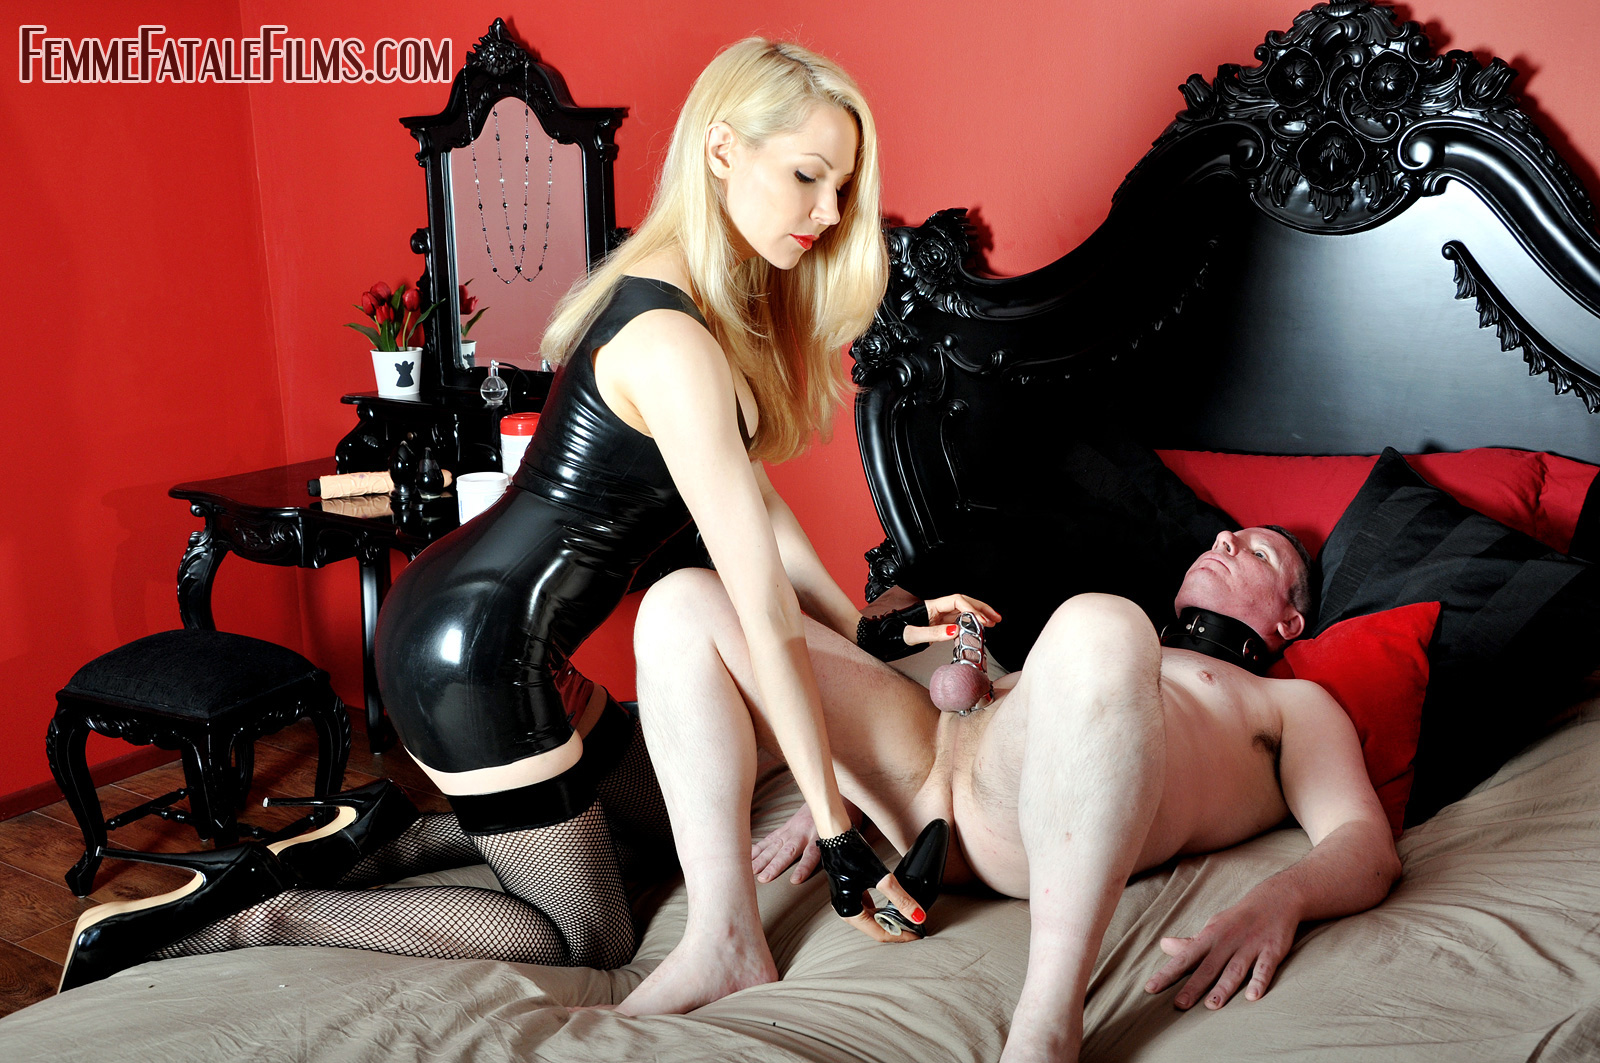 Filled milk adult domination video sharing indian